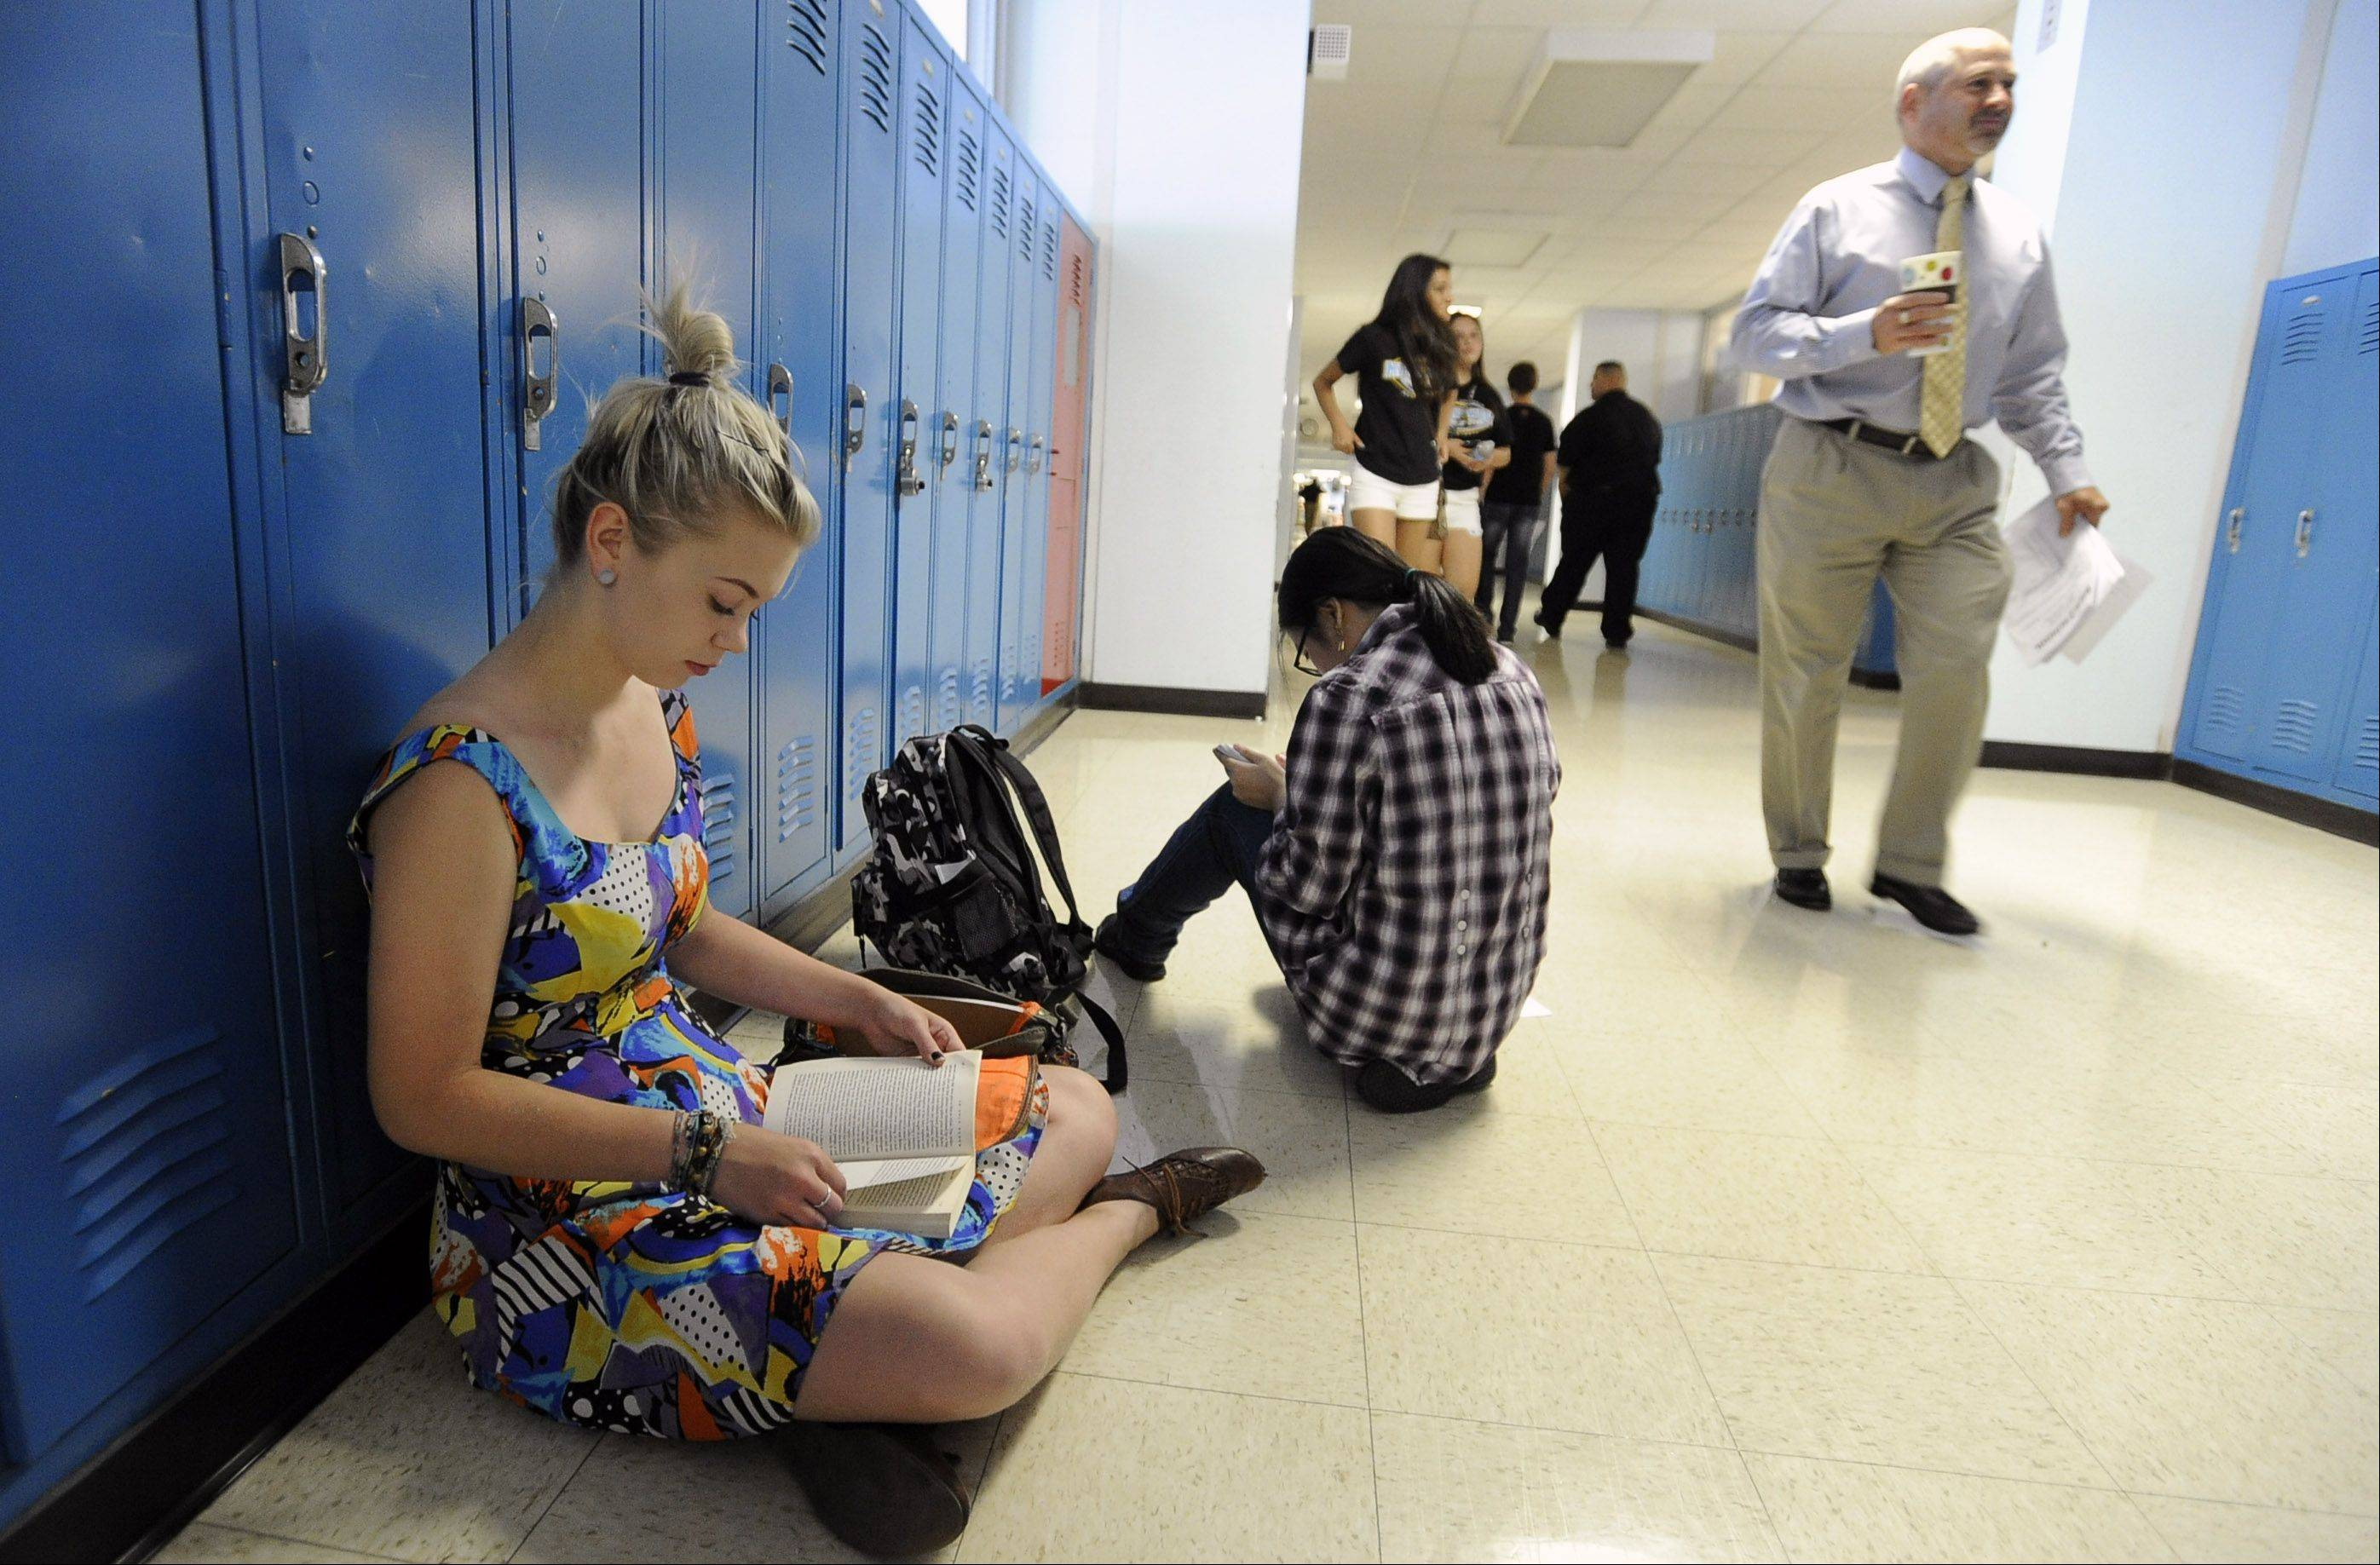 Maine West High School junior Danni Schanmier, 16, takes time to read a book before heading off to class on her first day back Monday.